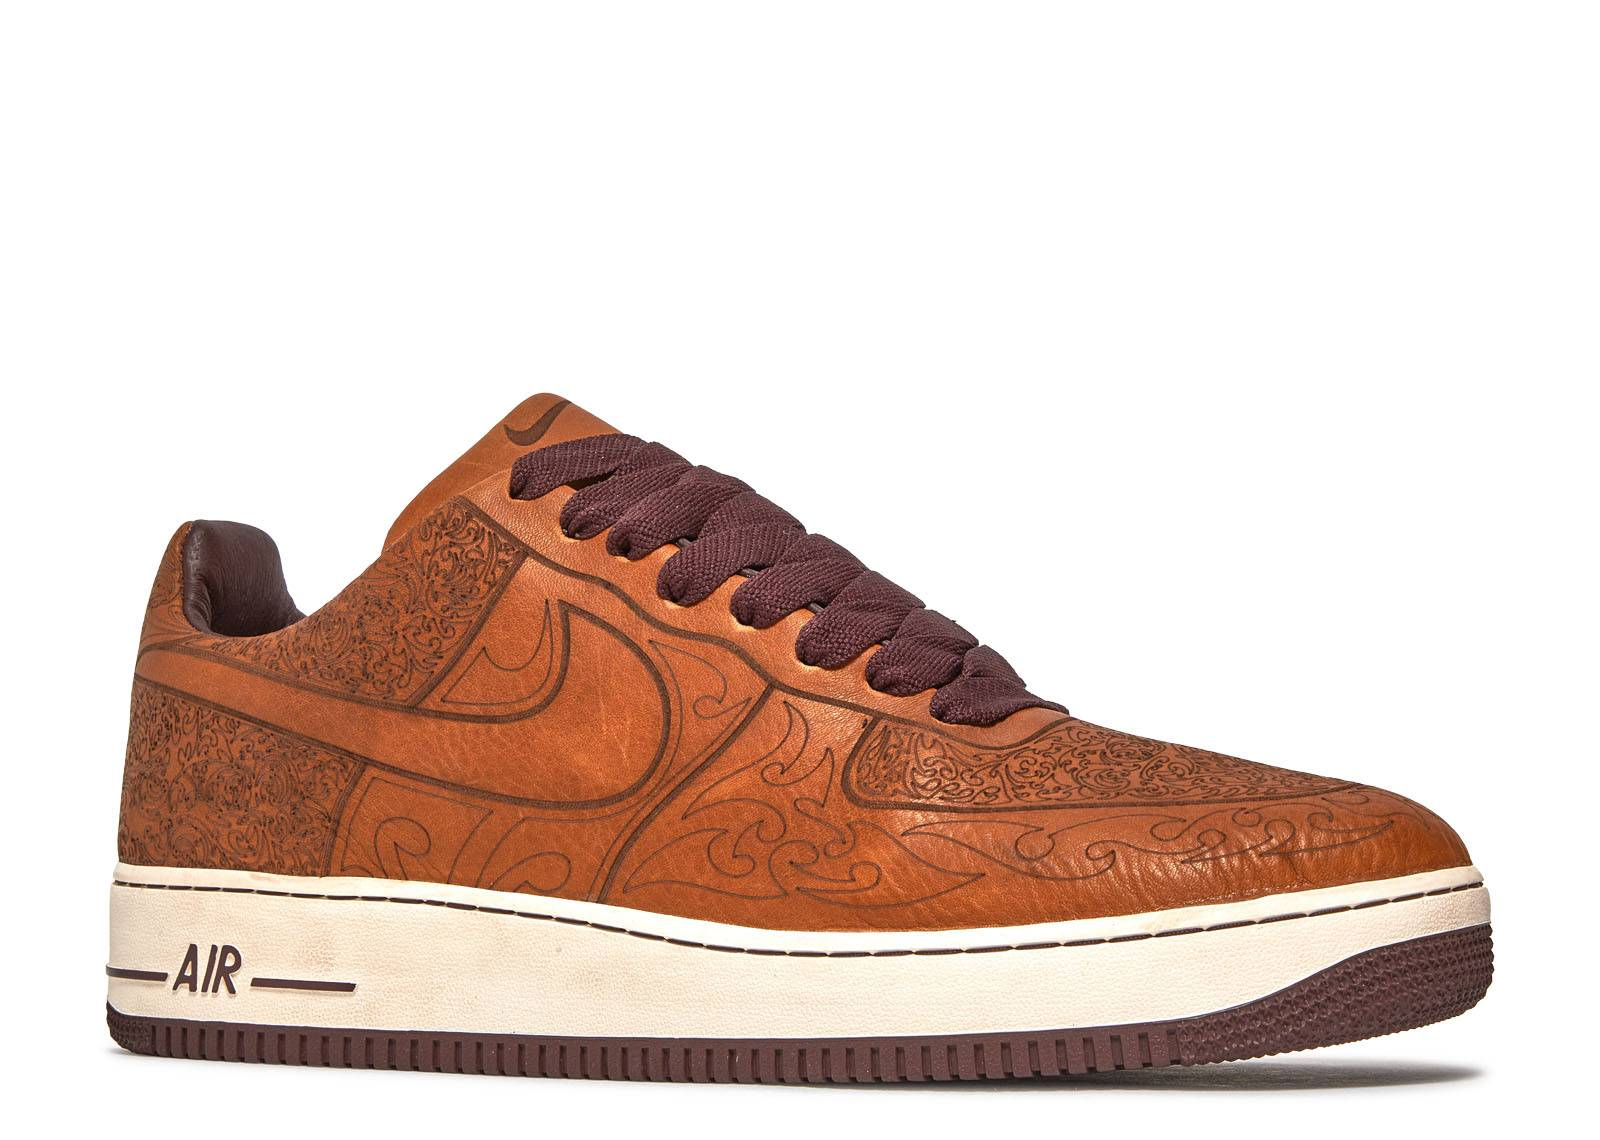 168761ea68b100 nike air force 1 premium mark smith 170 Results Free Delivery over Super  Saturday 20% Off. Nike Free RN 2018 Kids Running Shoes ...